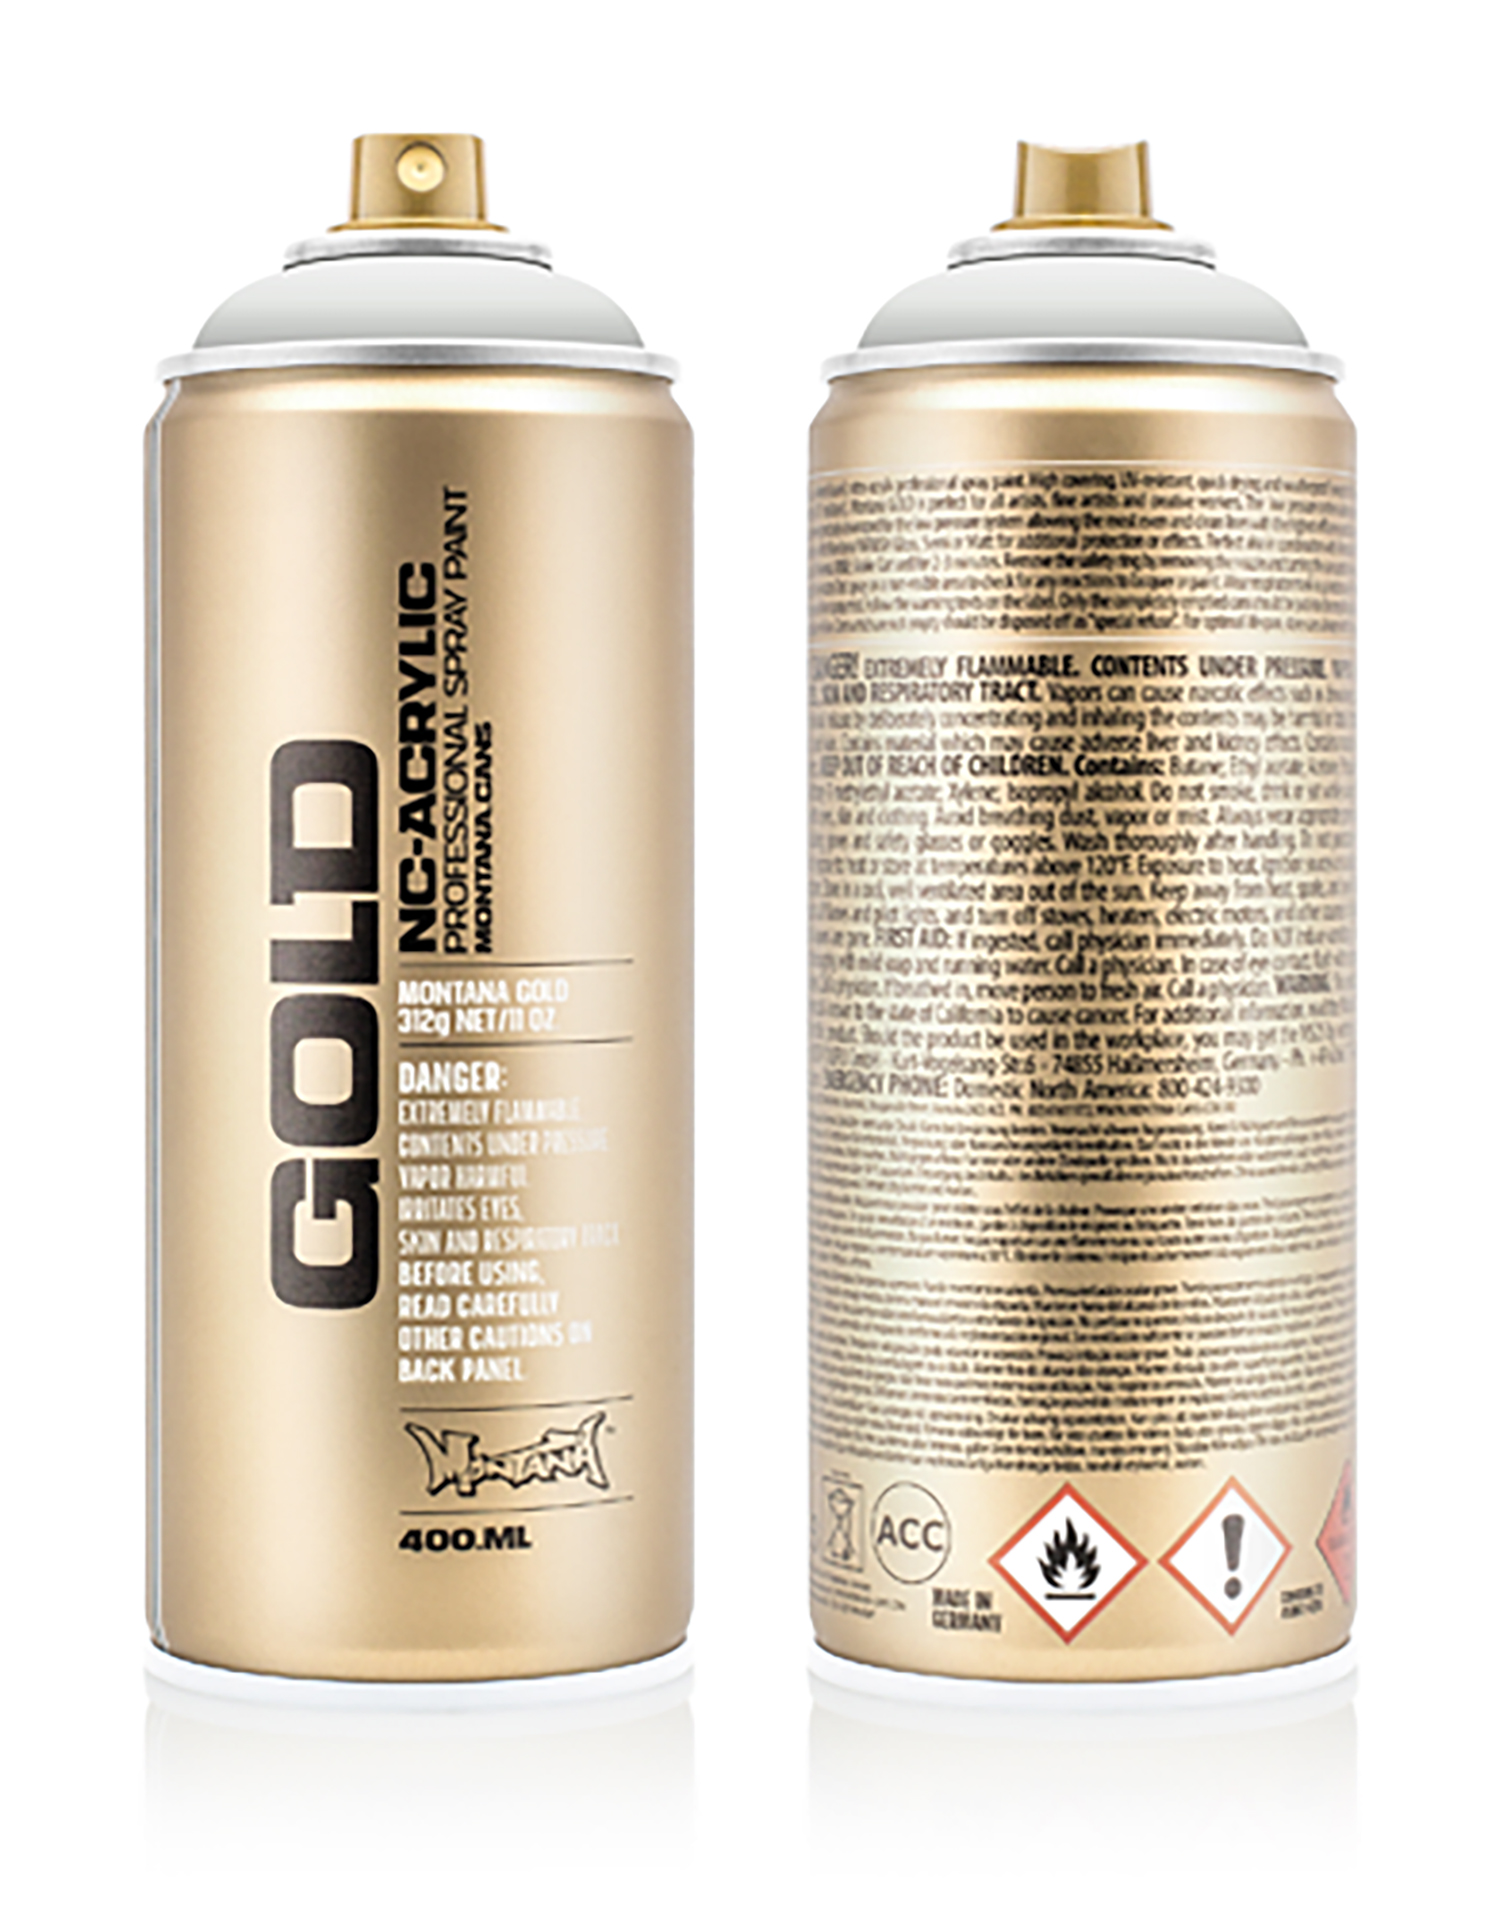 MONTANA-GOLD-SPRAY-400ML-G-7010